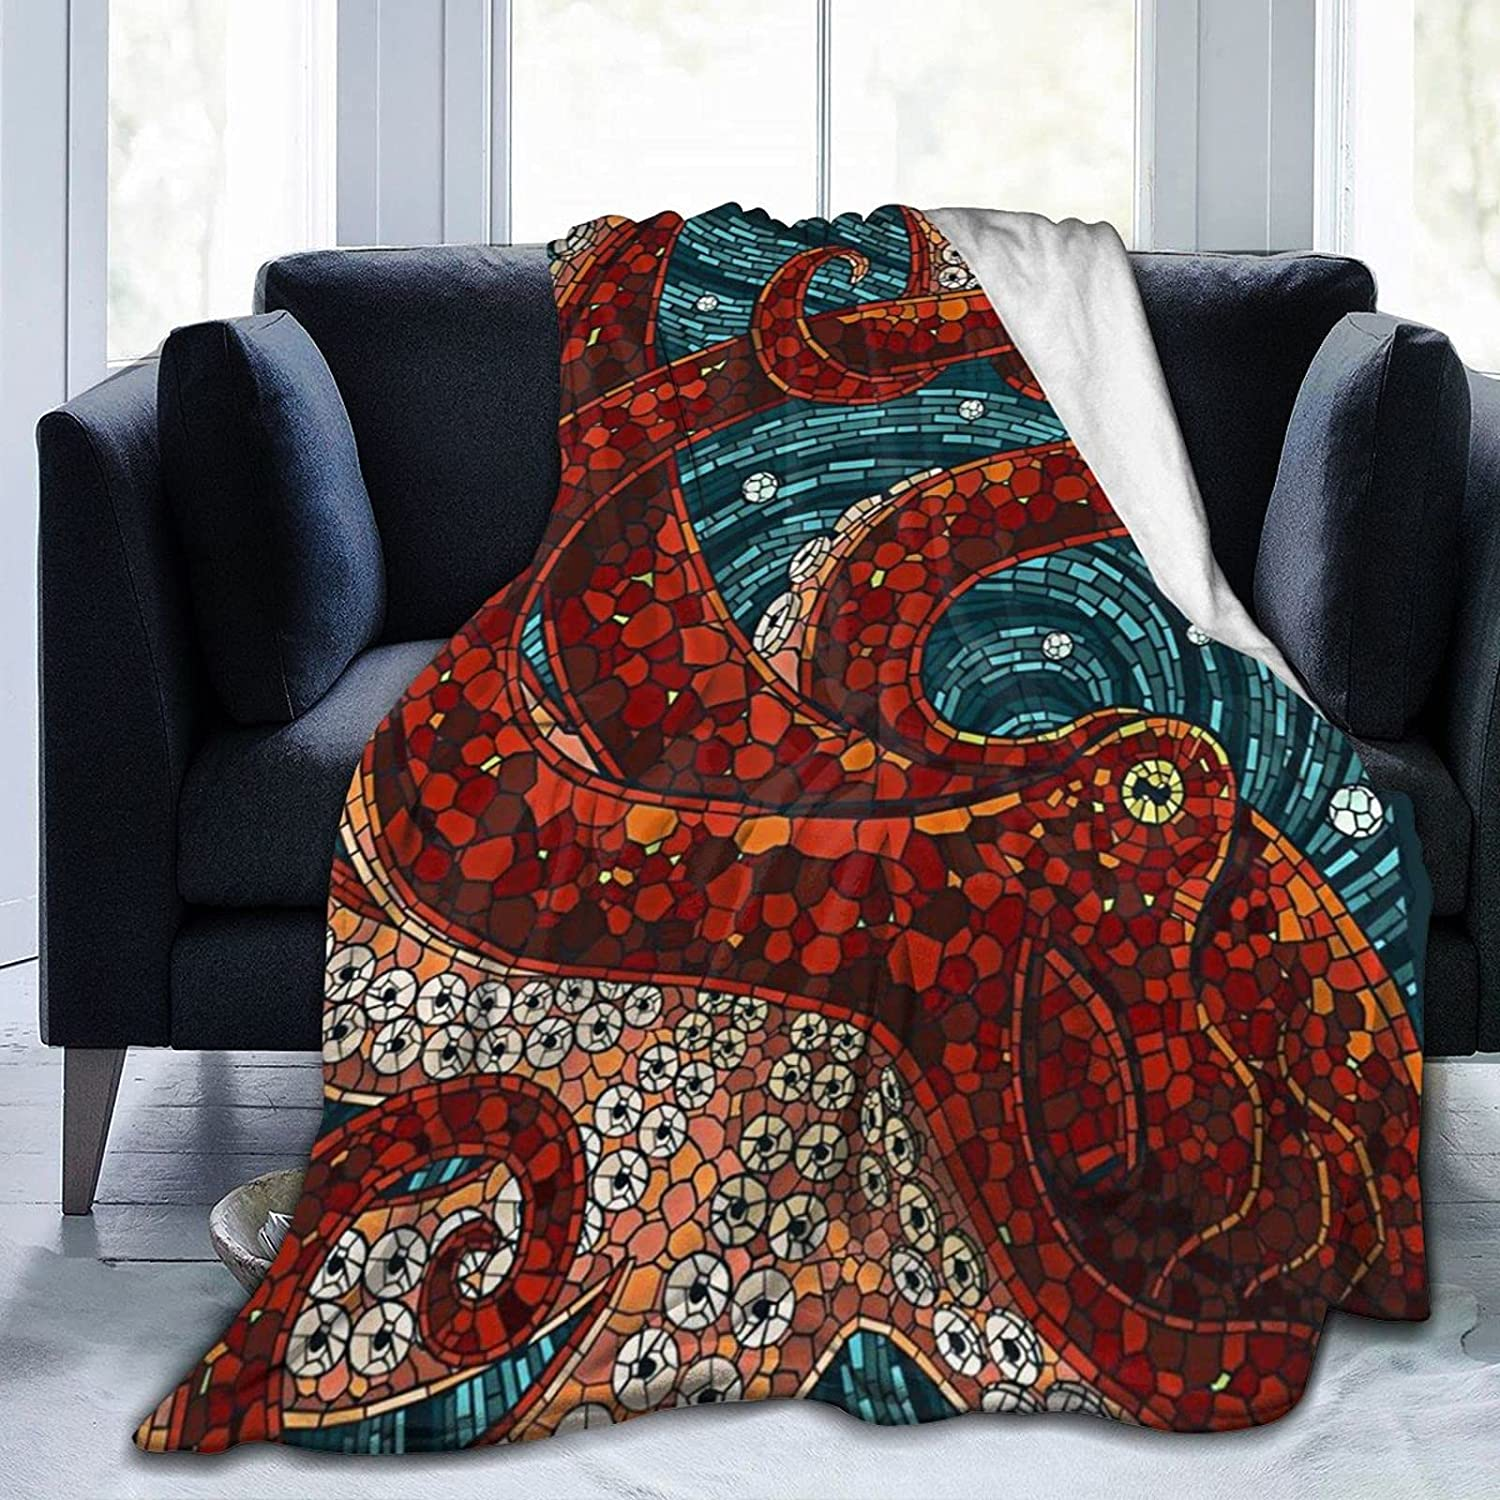 Octopus Oversized Bed Blankets Las Vegas Mall sold out Blanket Breathable Tr Lightweight